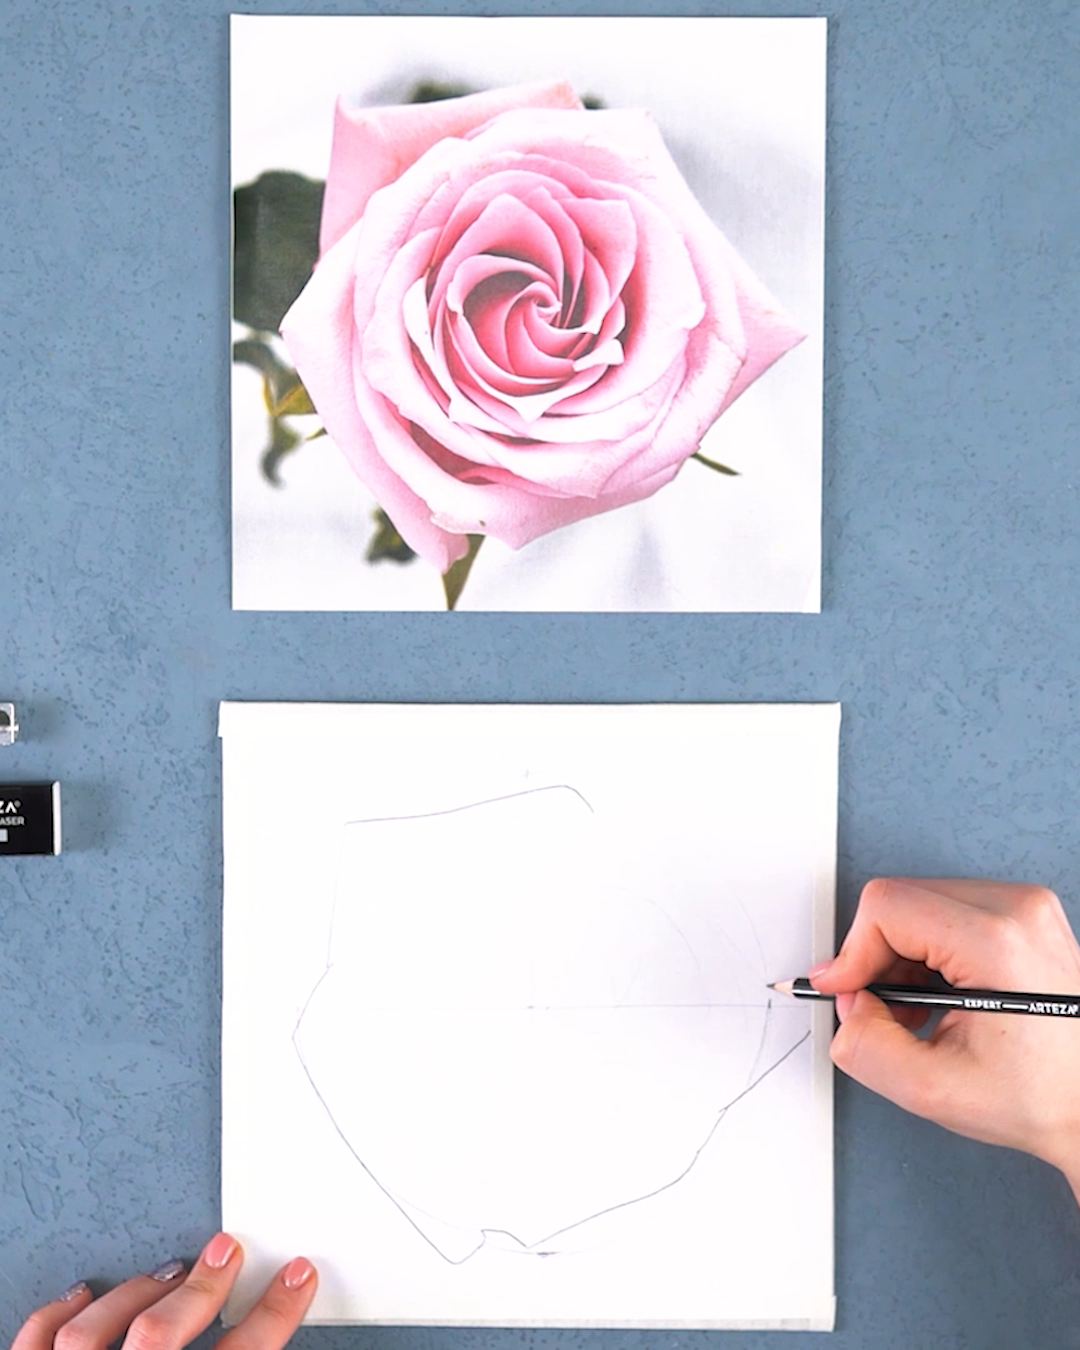 Rose Watercolor Tutorials 🌹 -  Ever wanted to learn how to create a painting of a rose? Click the button to watch the full video o - #animationideas #babycaretips #DestinationWedding #homeschoolingideas #Rose #tutorials #watercolor